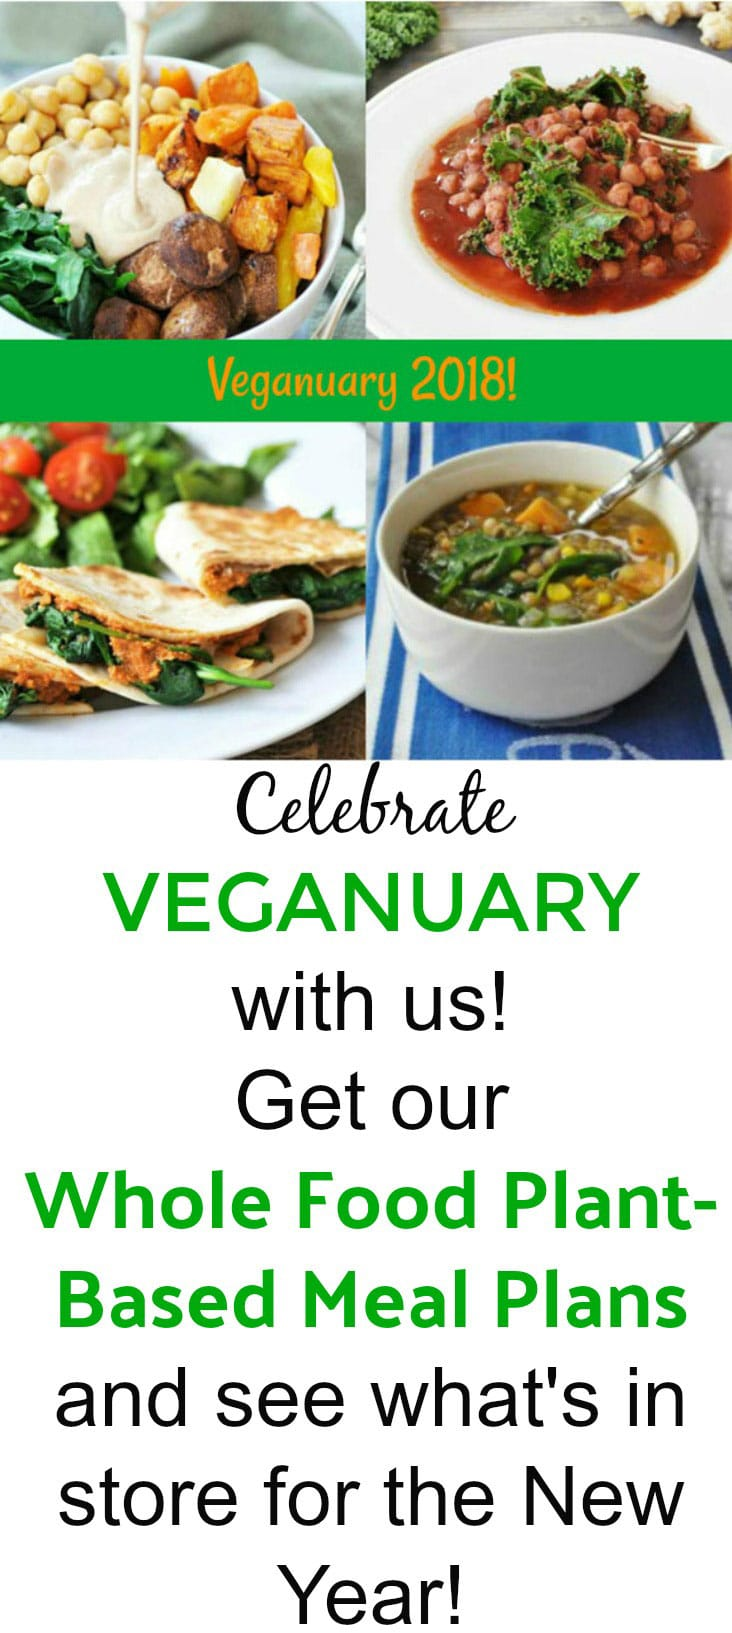 Celebrate Veganuary with 5 healthy meal plans and more to come!